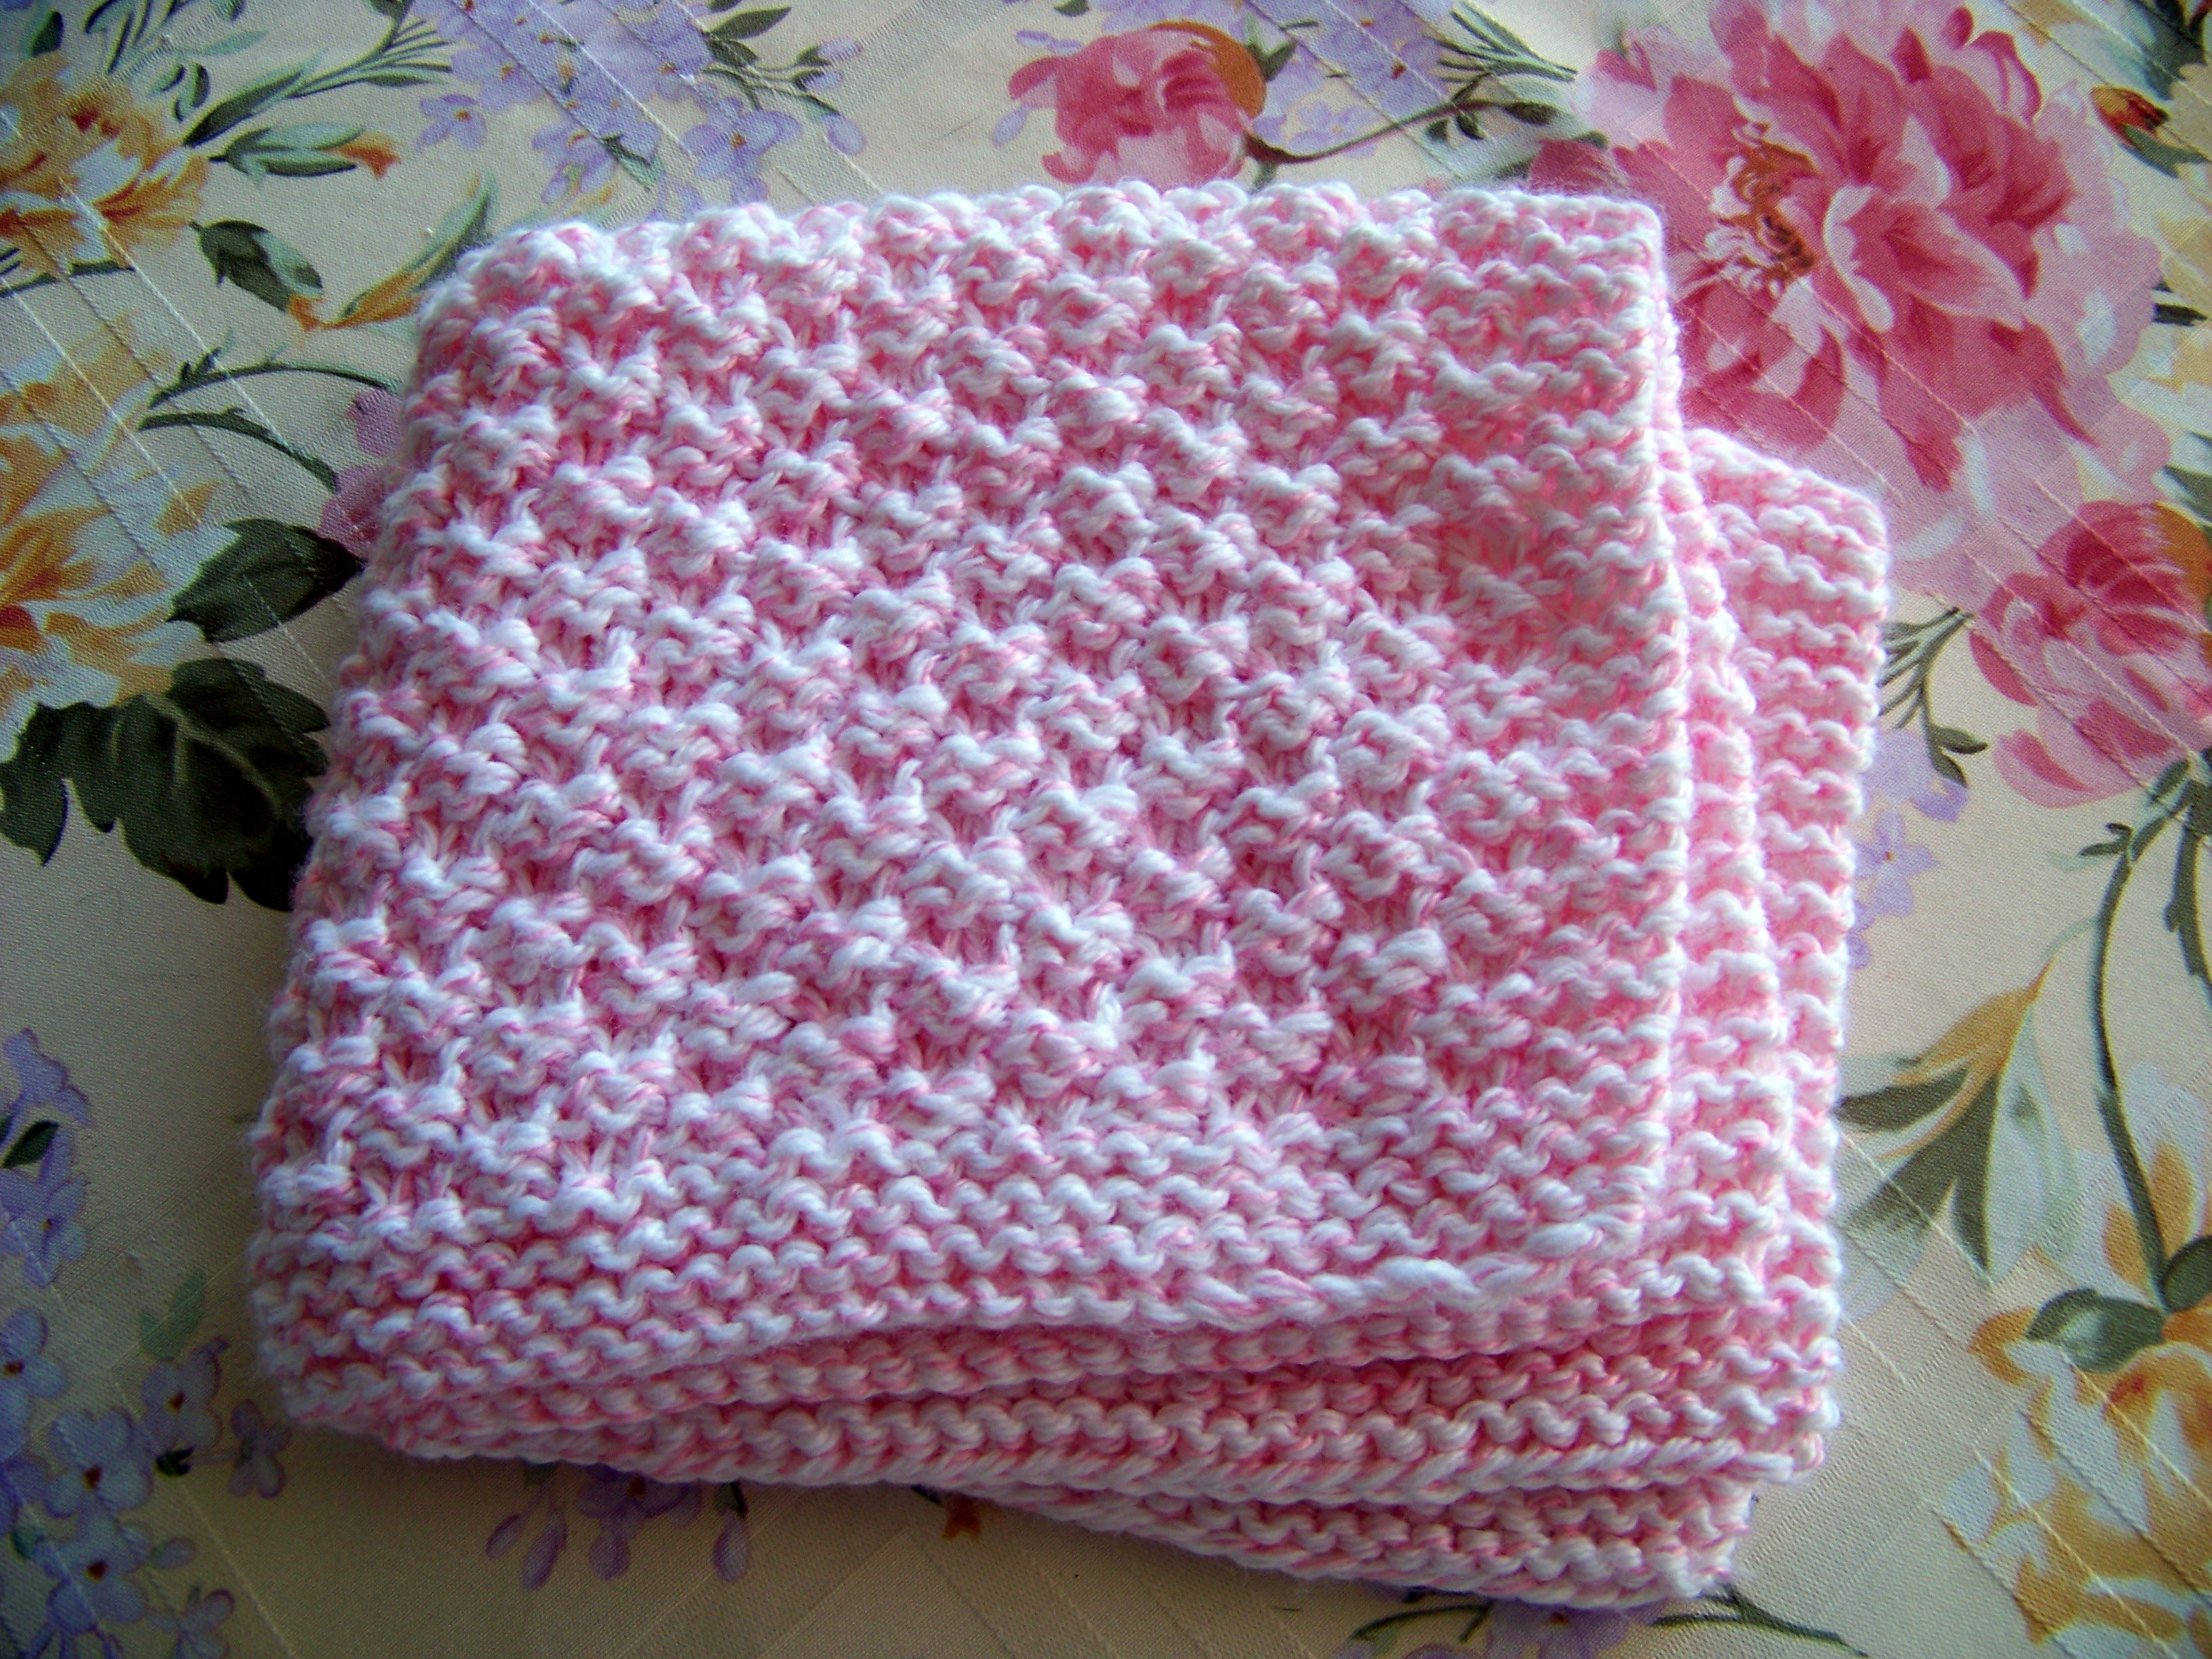 Free Crochet Patterns For Baby Pram Blankets : Box Stitch Preemie Baby Blanket 16?x14? Premature baby ...